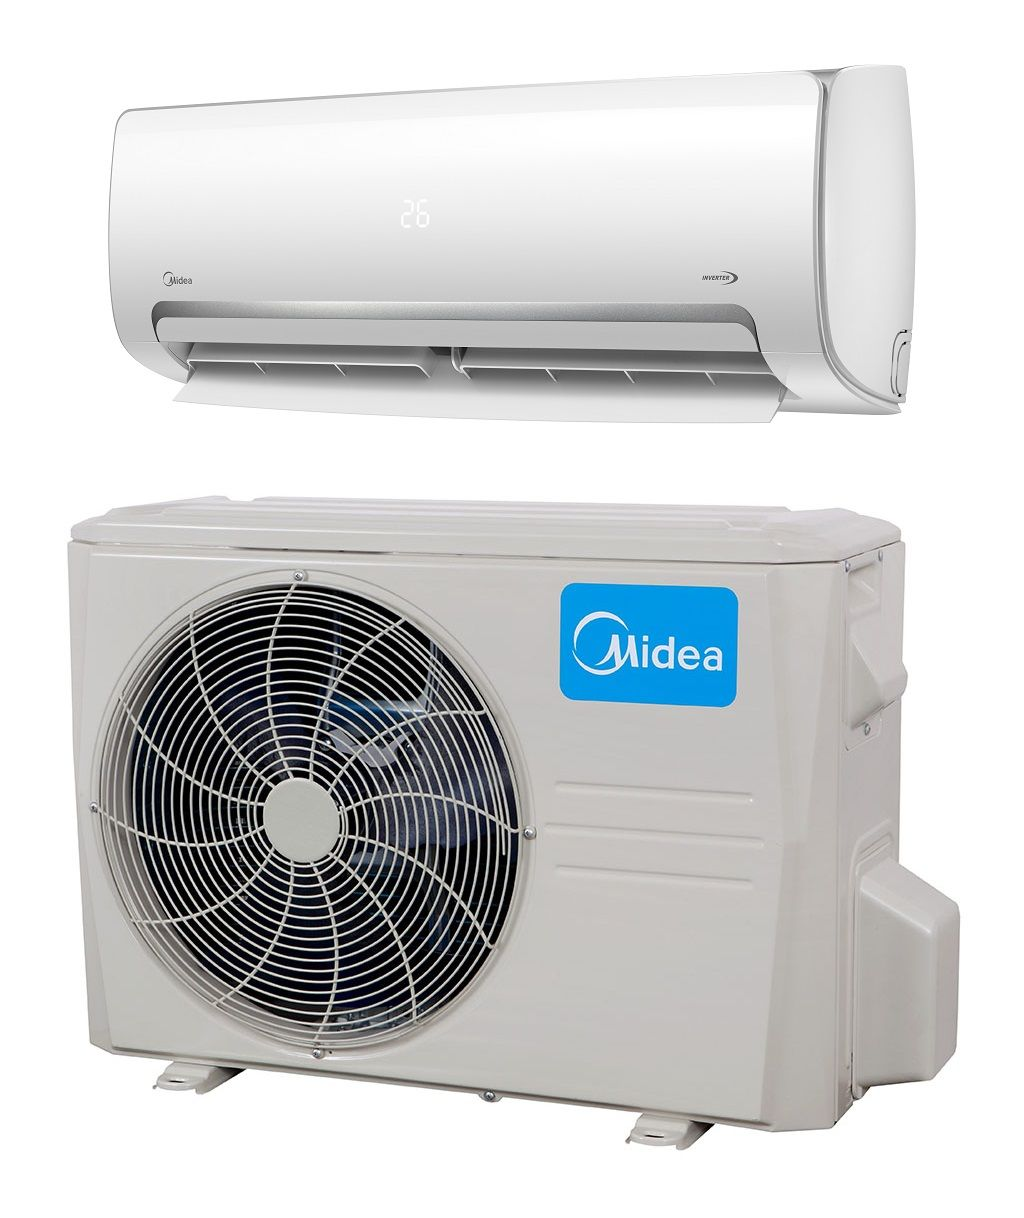 Midea 12000 Btu 110v in We can help